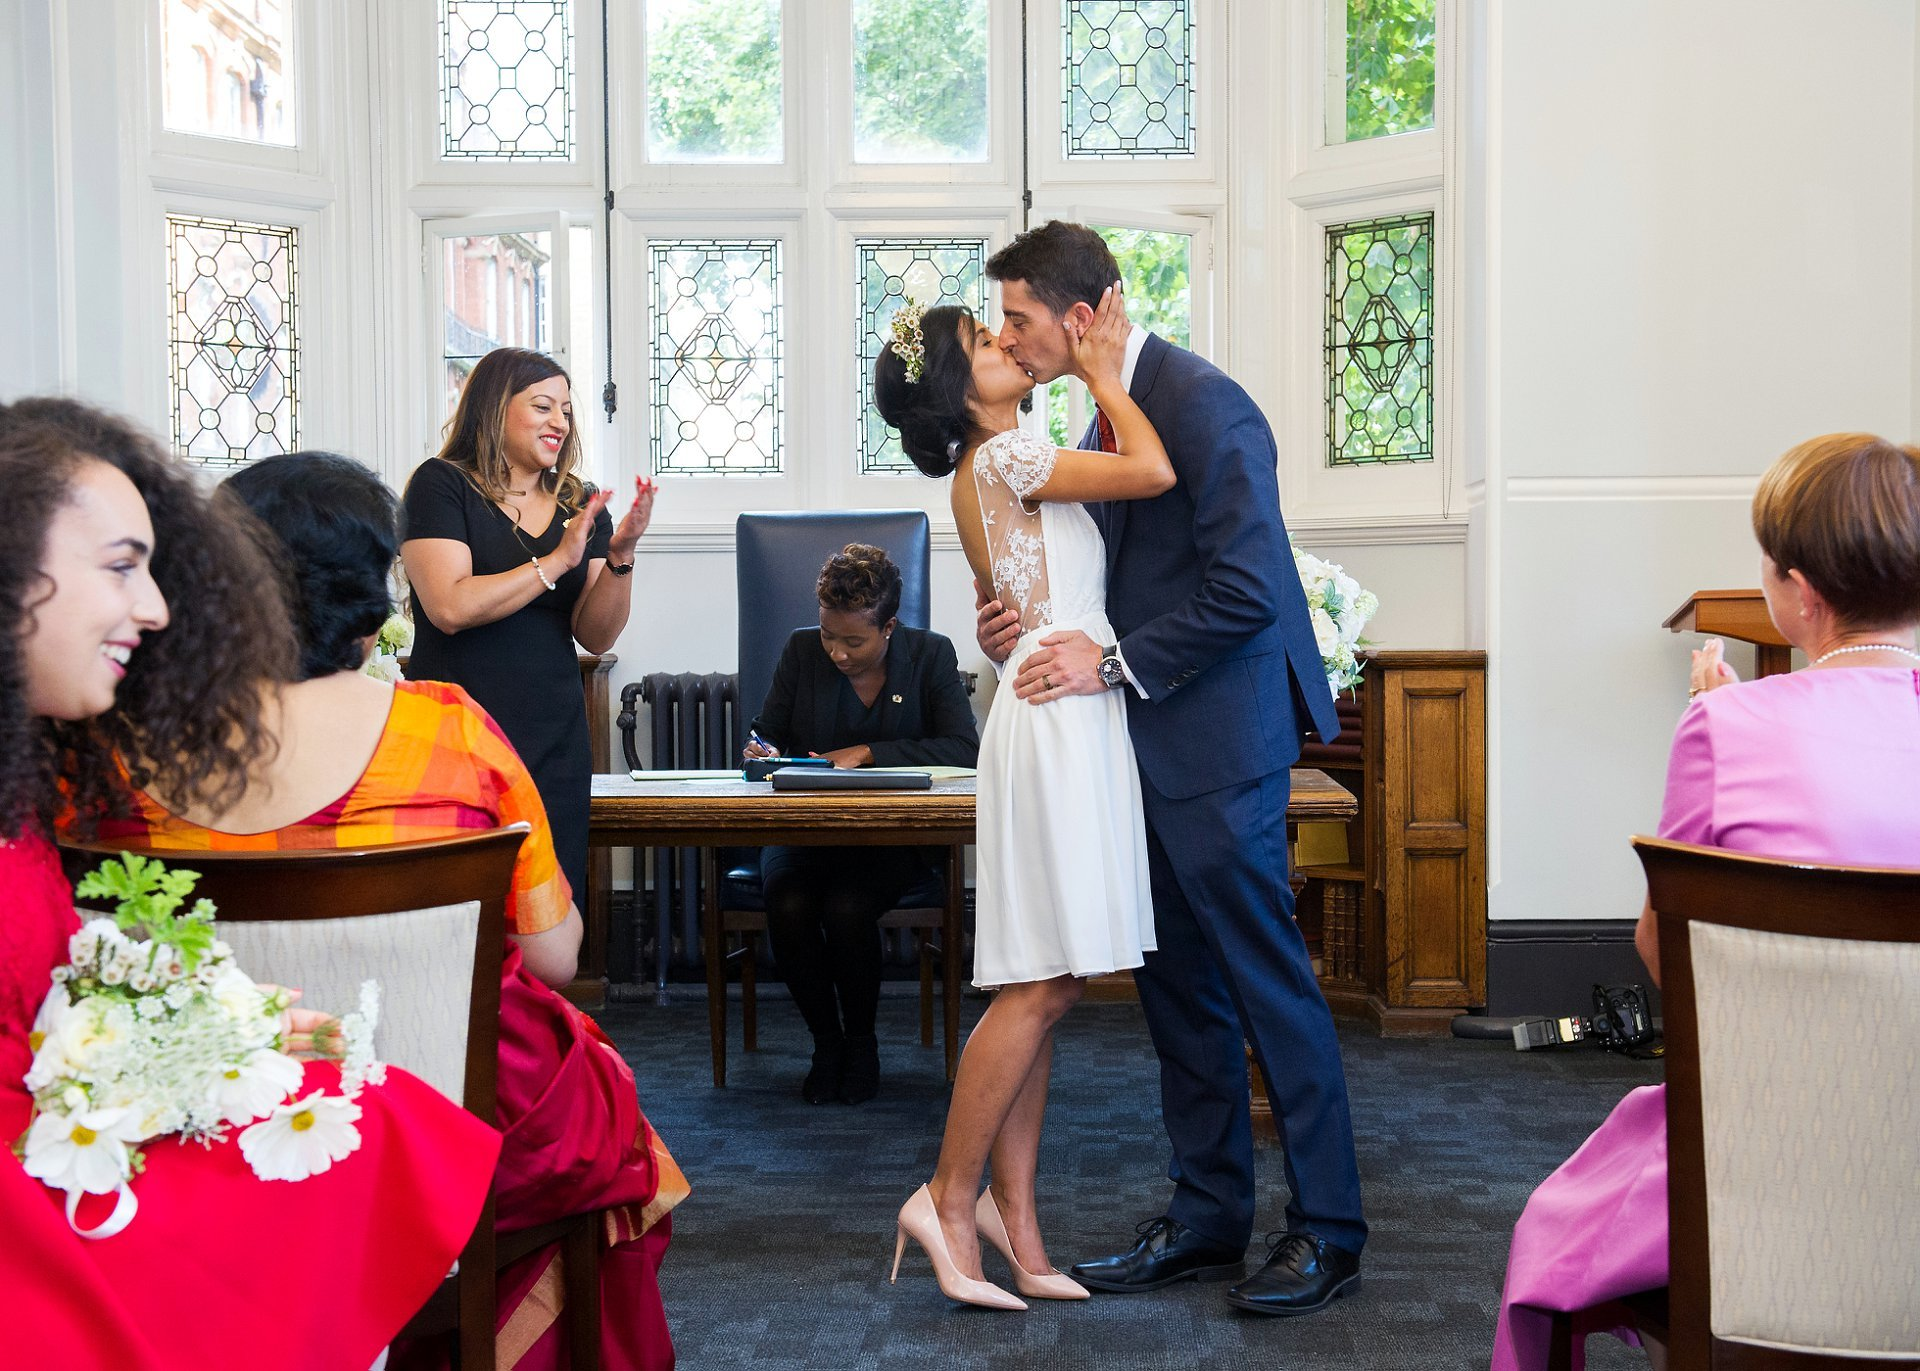 mayfair library summer wedding photography with un streaming into the mayfair ceremony room as the bride and groom kiss for the first time as husband and wife